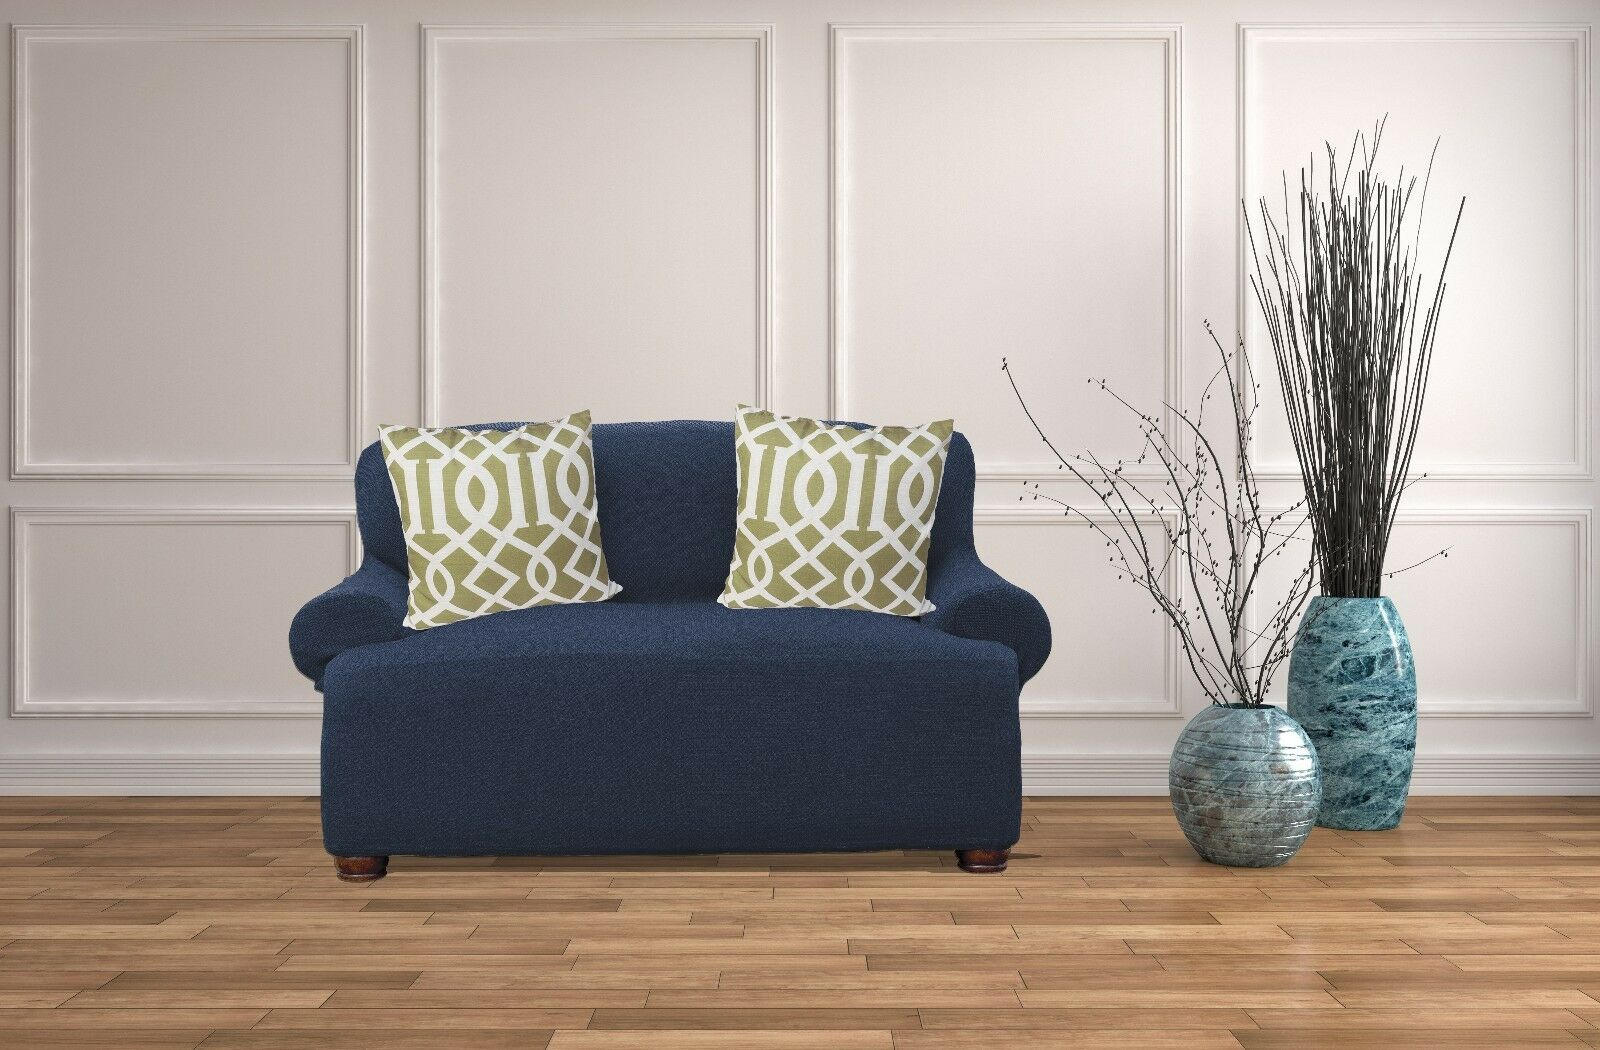 Sofa Arm Covers Dublin Details About Dublin Popcorn Slipcover Soft Stretch Textured Furniture Cover Chair Sofa Couch